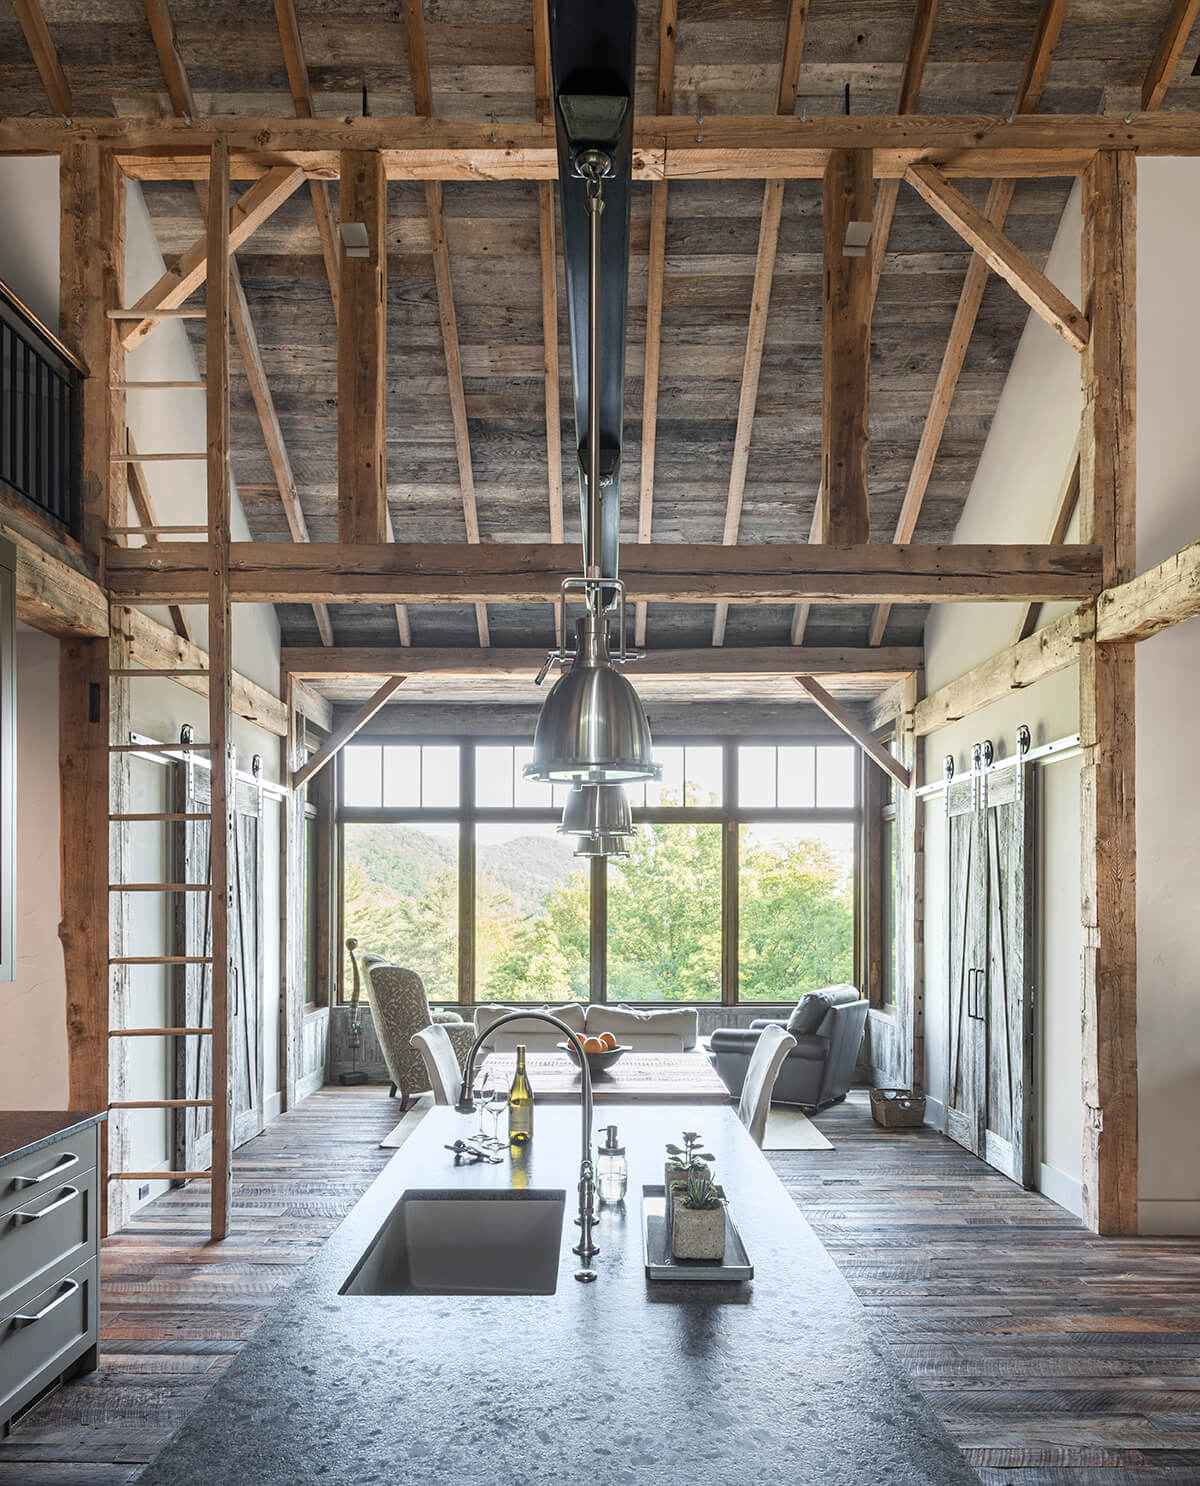 The Beaucatcher timber barn architectural build